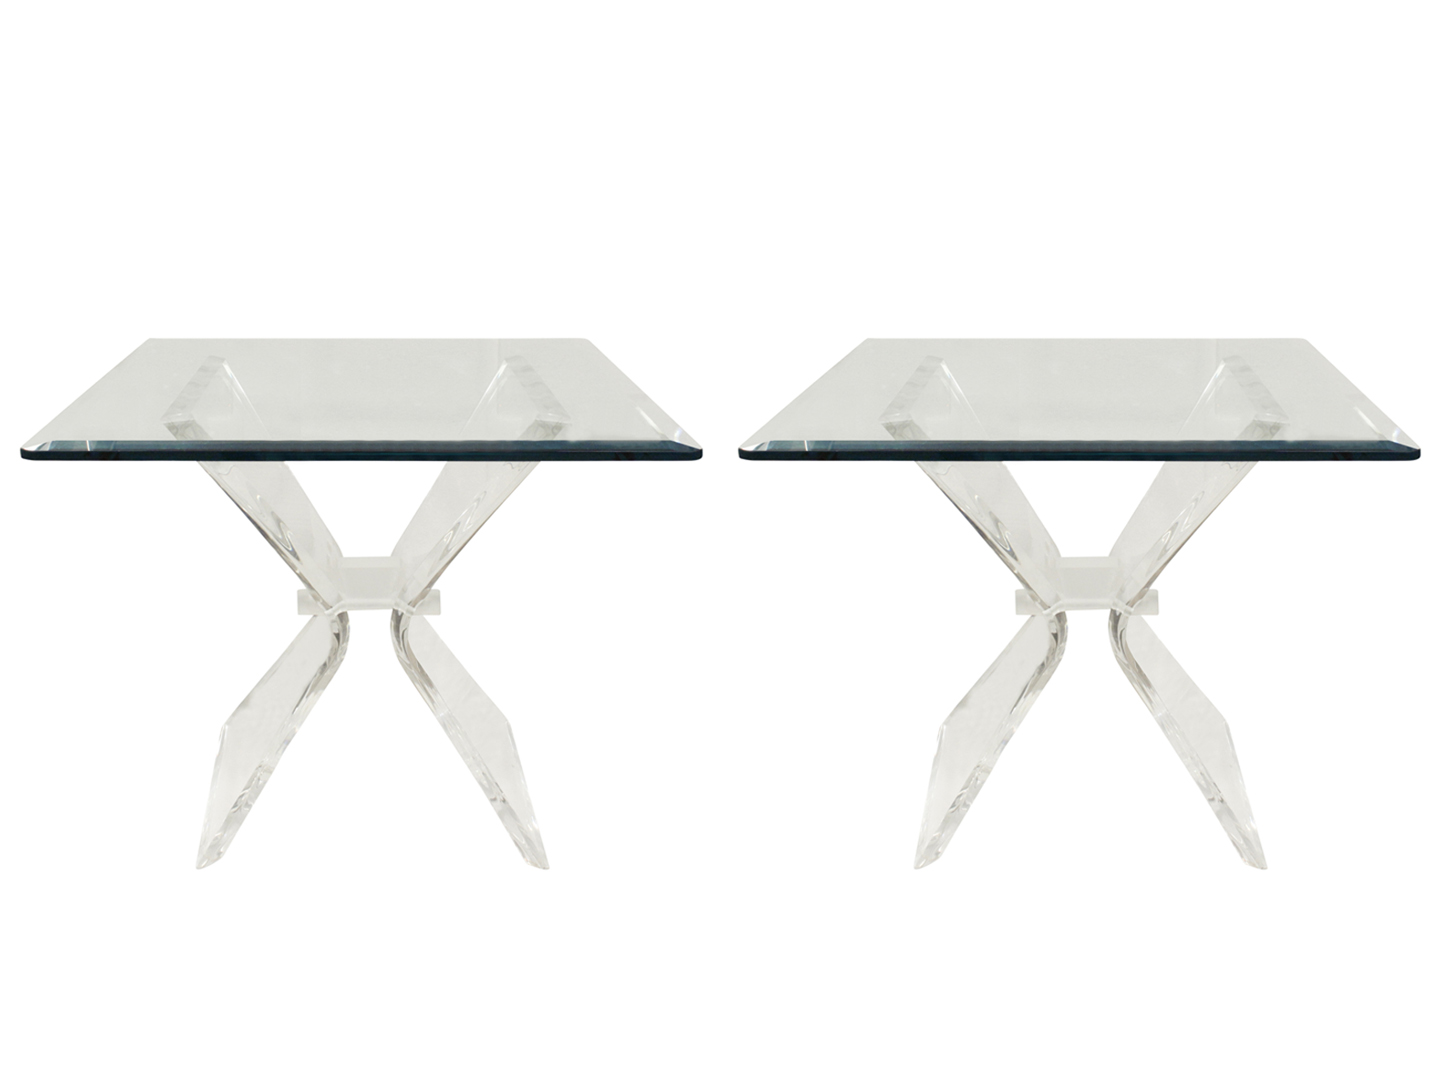 70s 75 lucite bases+glass tops endtables68 main 2.jpg